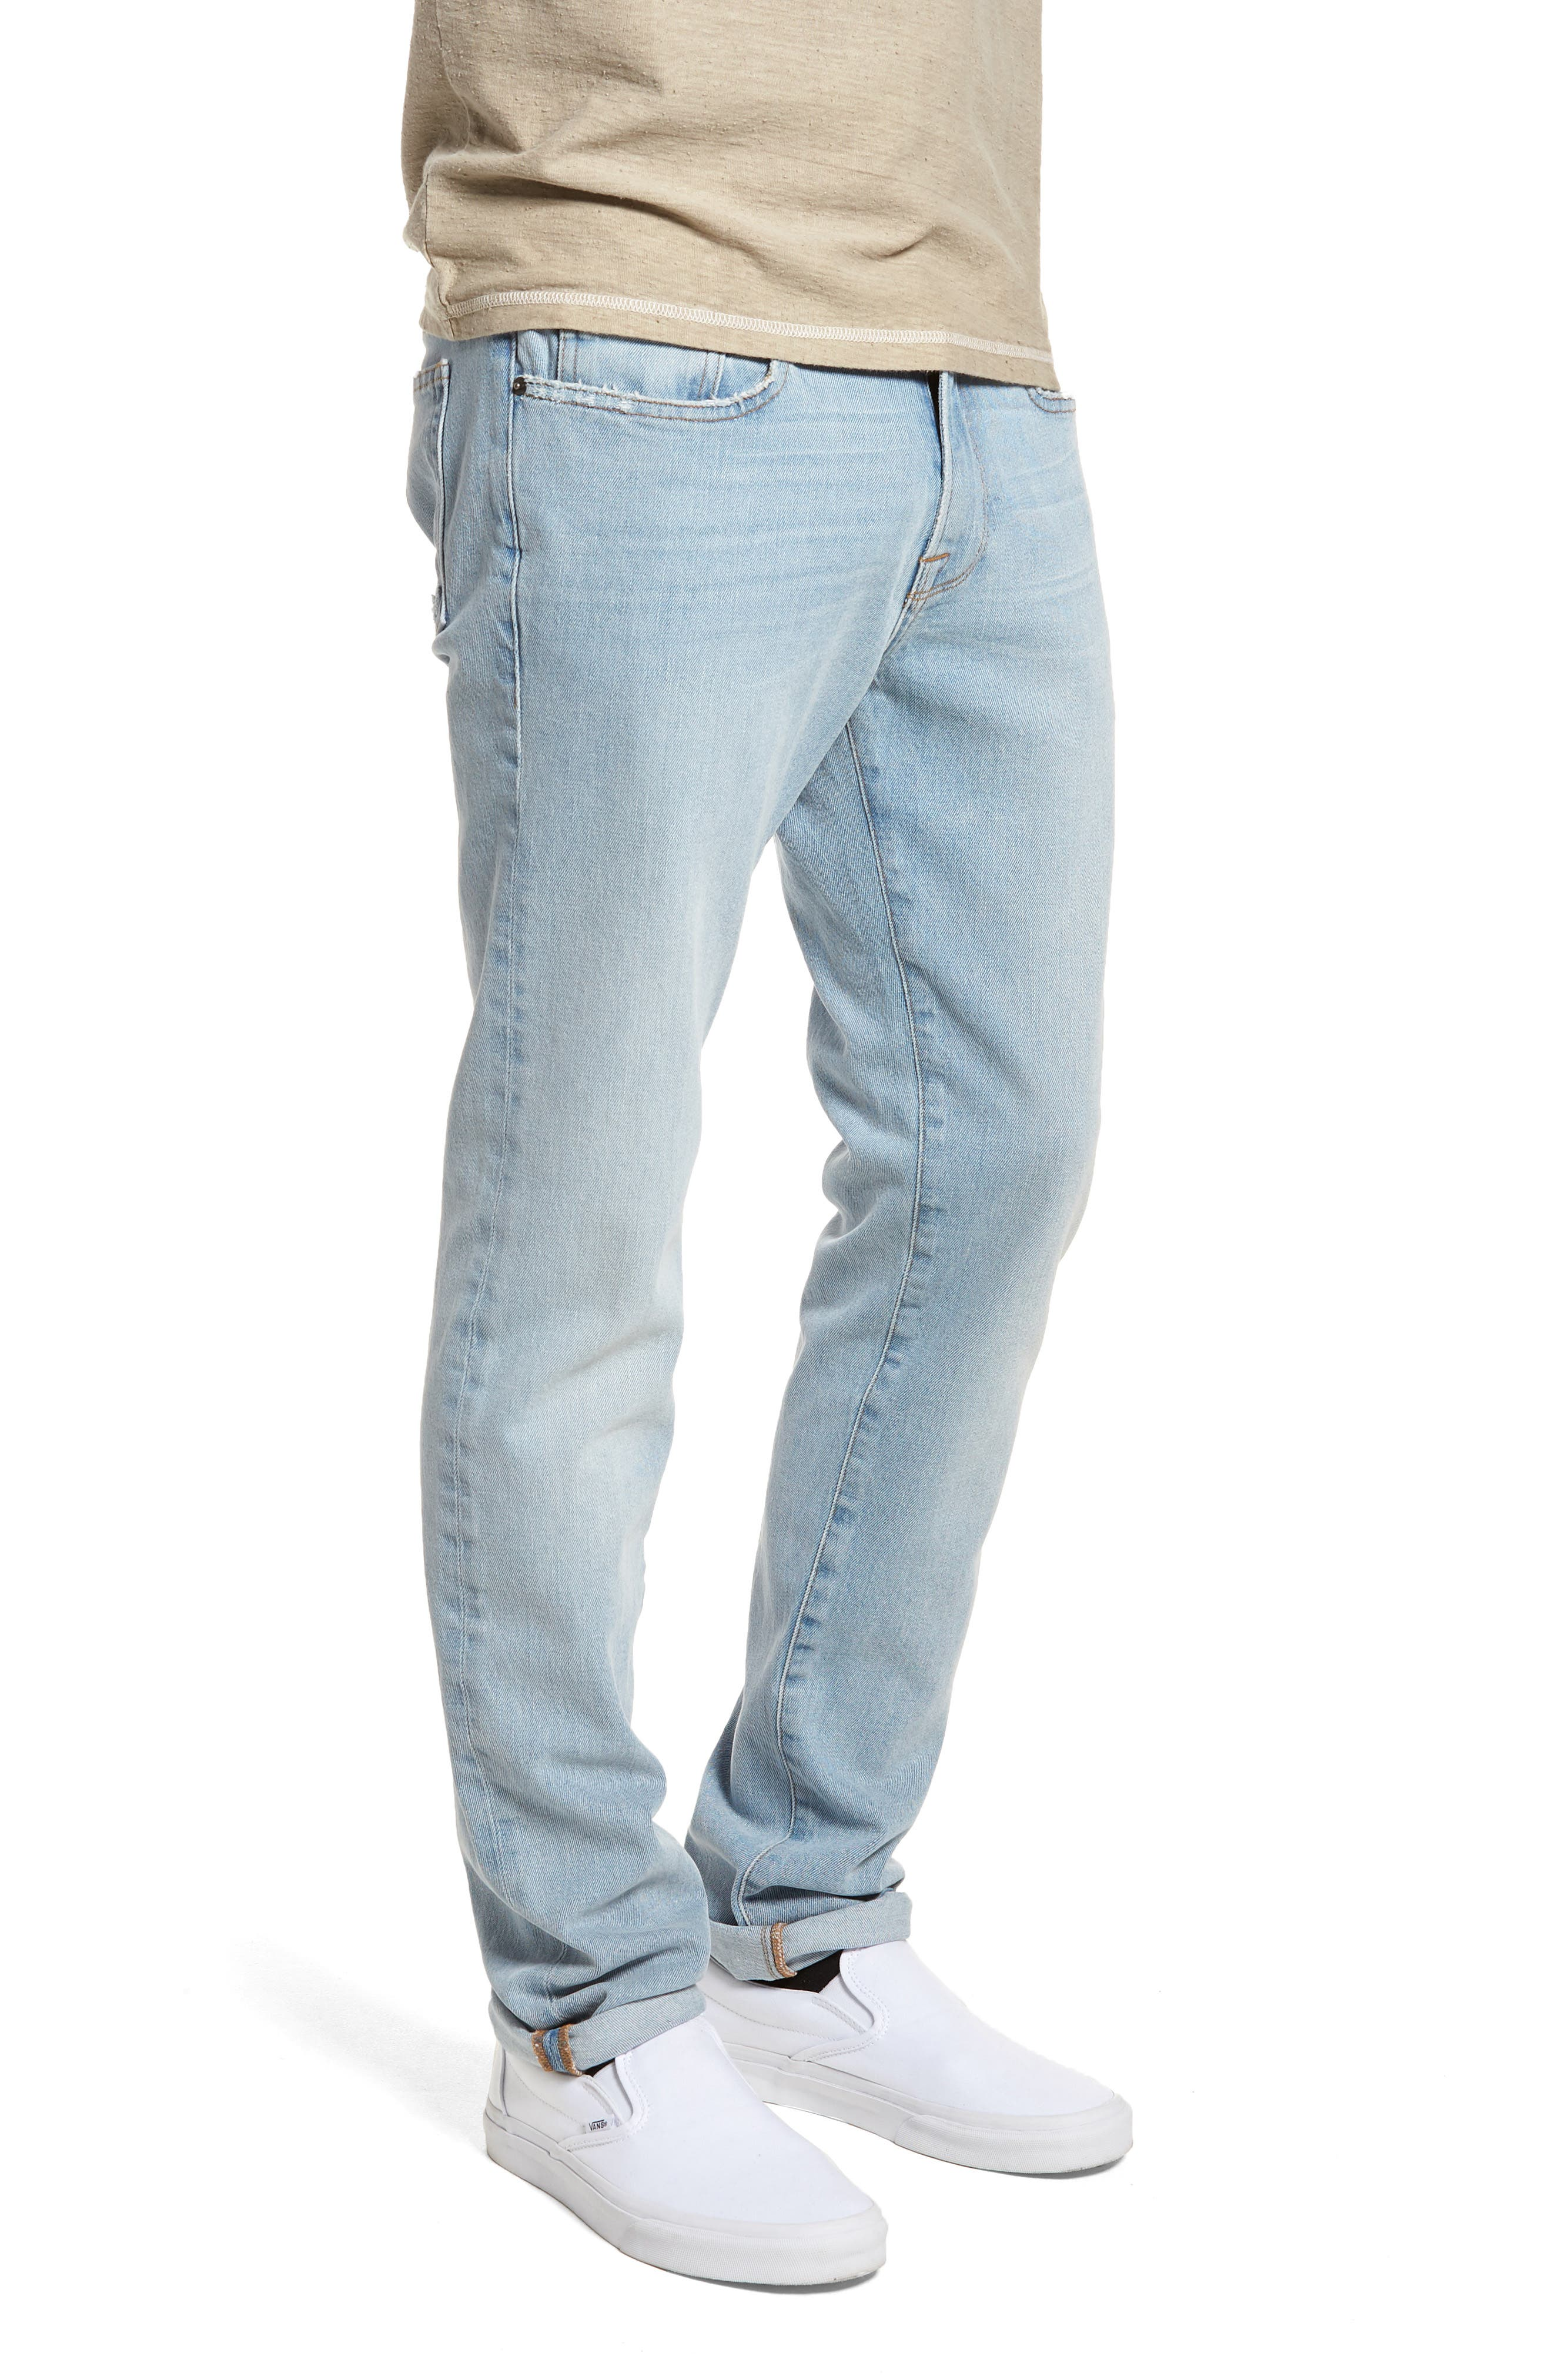 L'Homme Skinny Fit Jeans,                             Alternate thumbnail 3, color,                             450